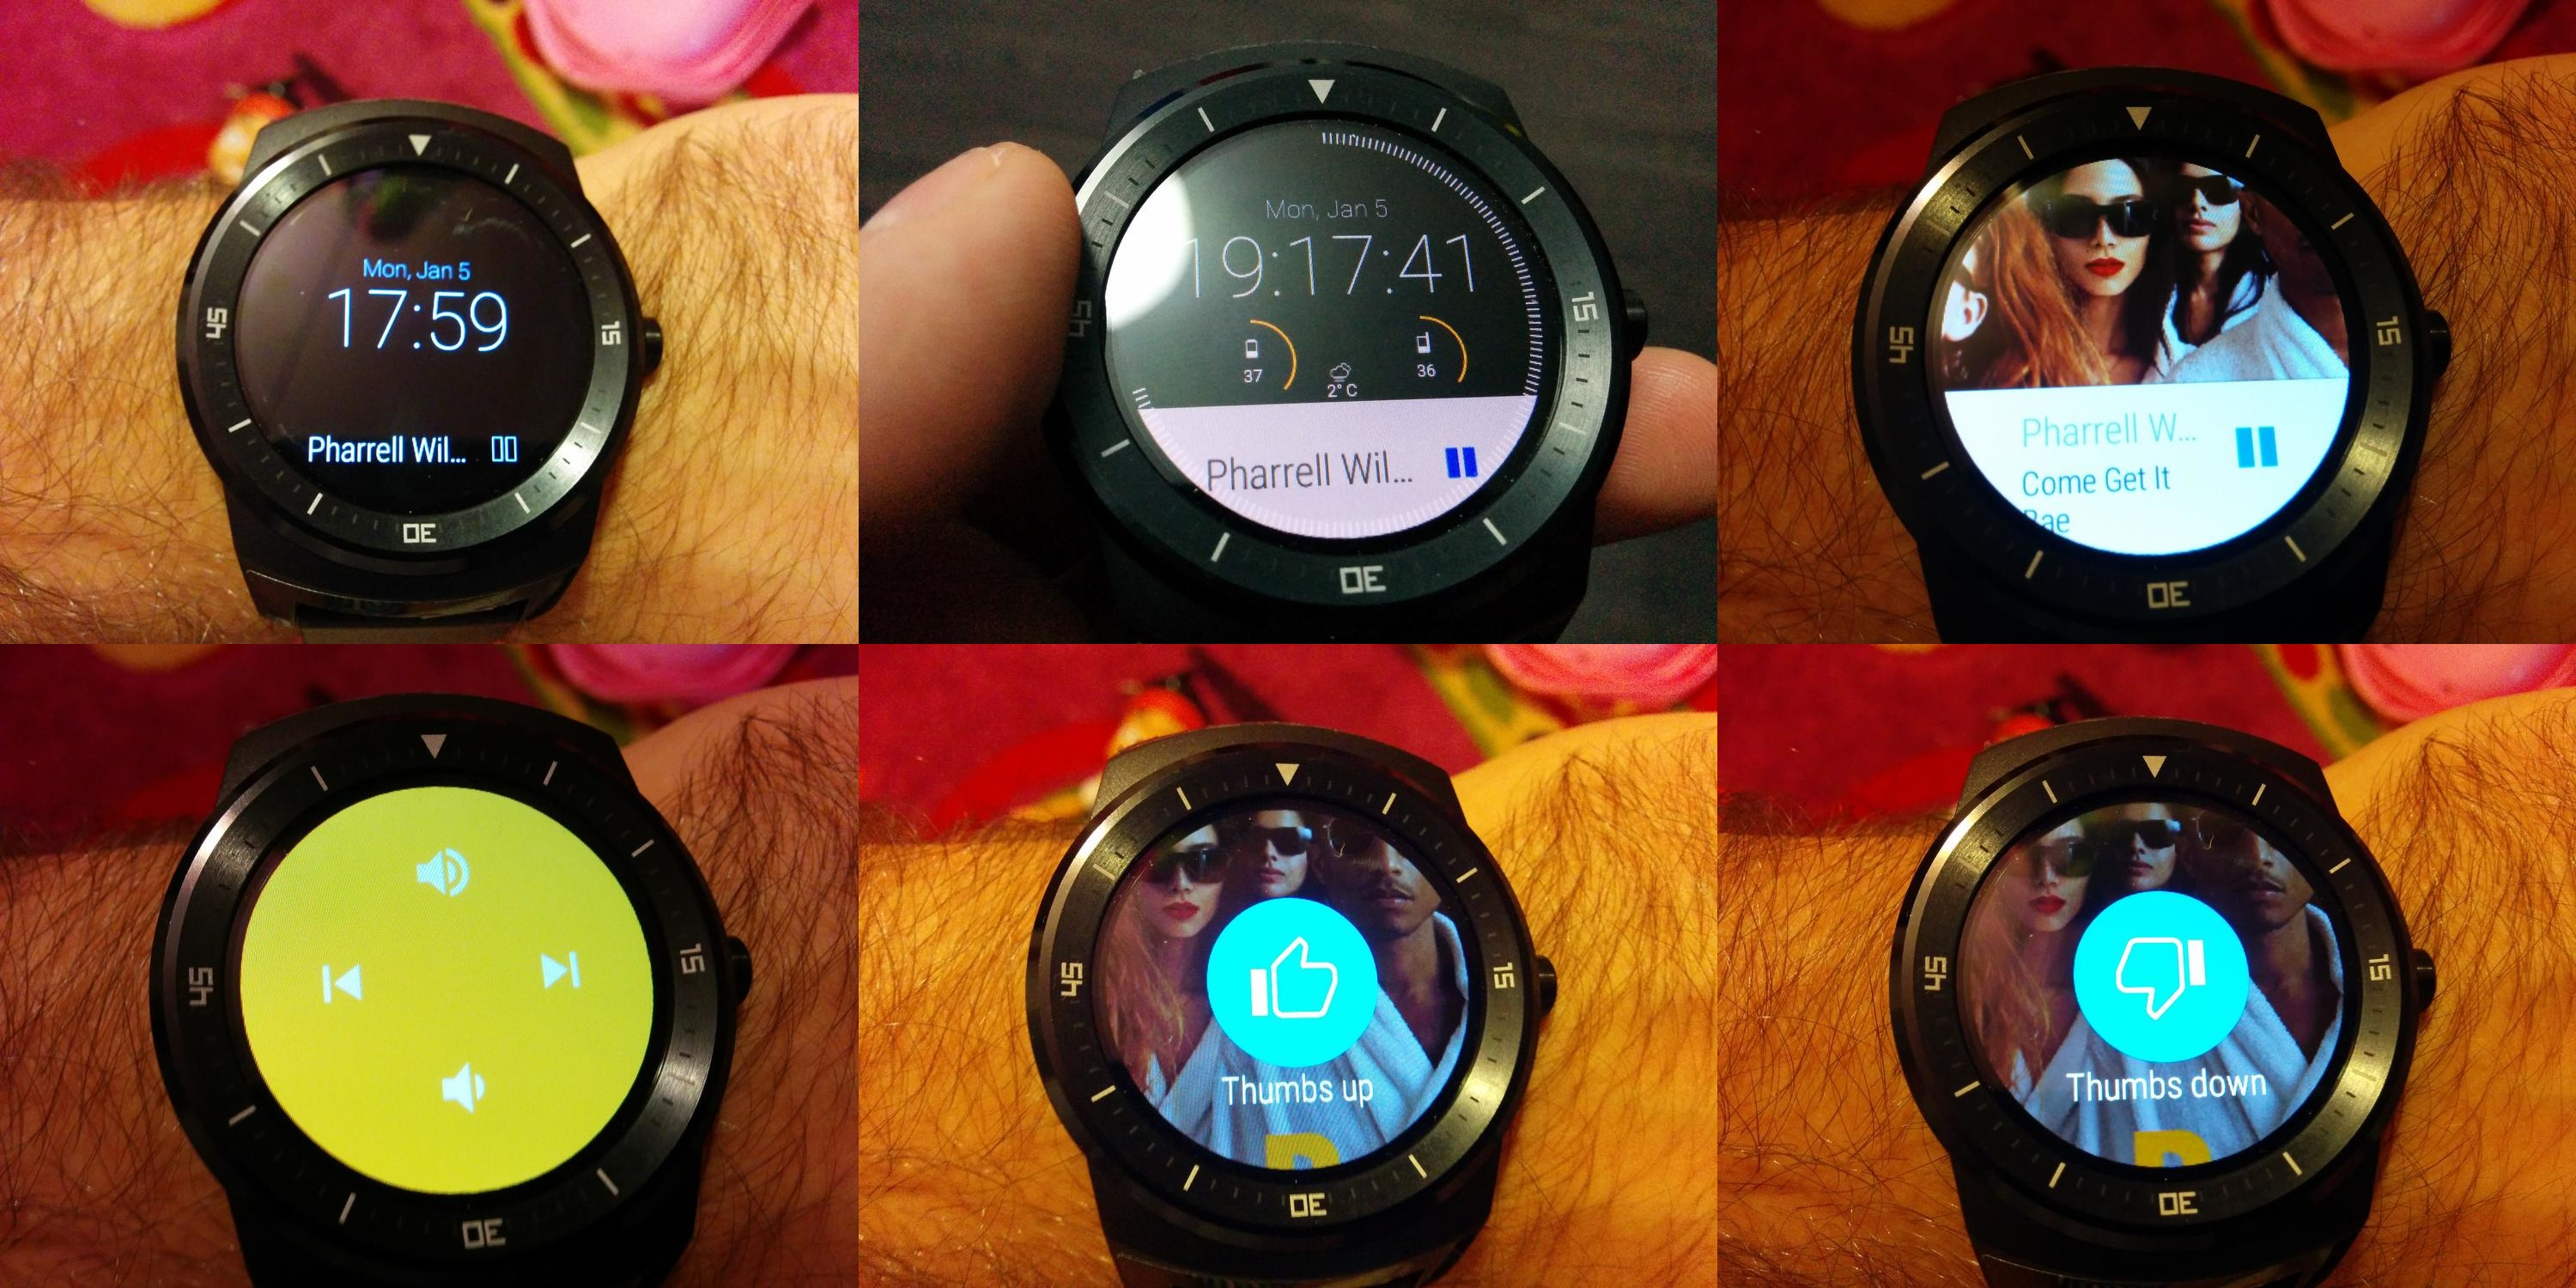 LG_G_watch_R_navigation_muzyka_player